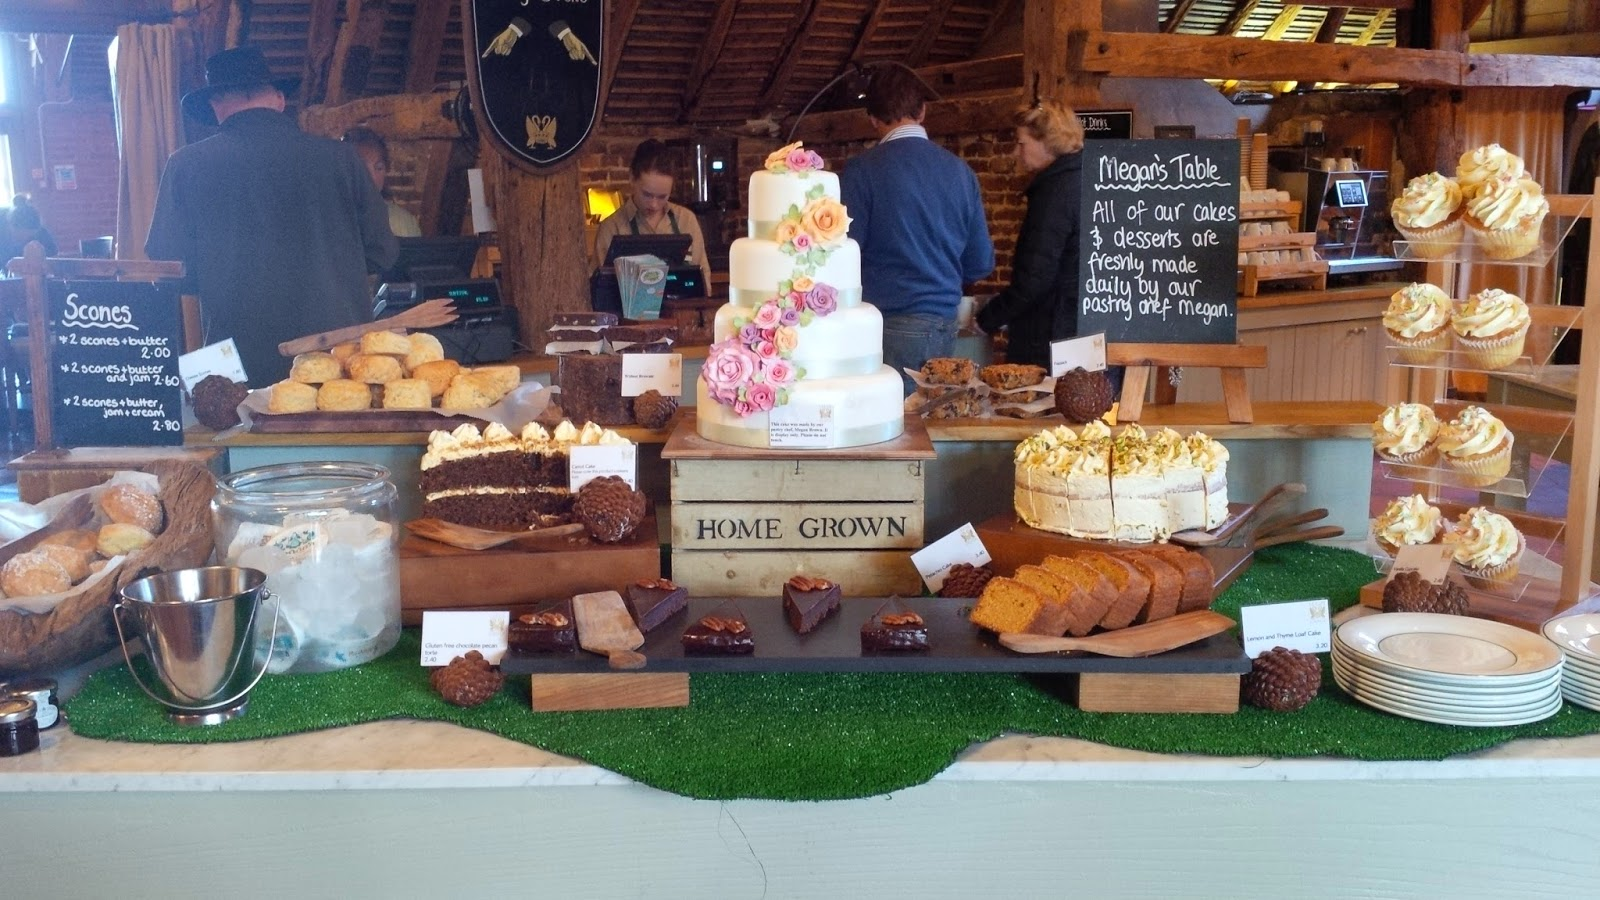 The desserts table at Leeds Castle's restaurant